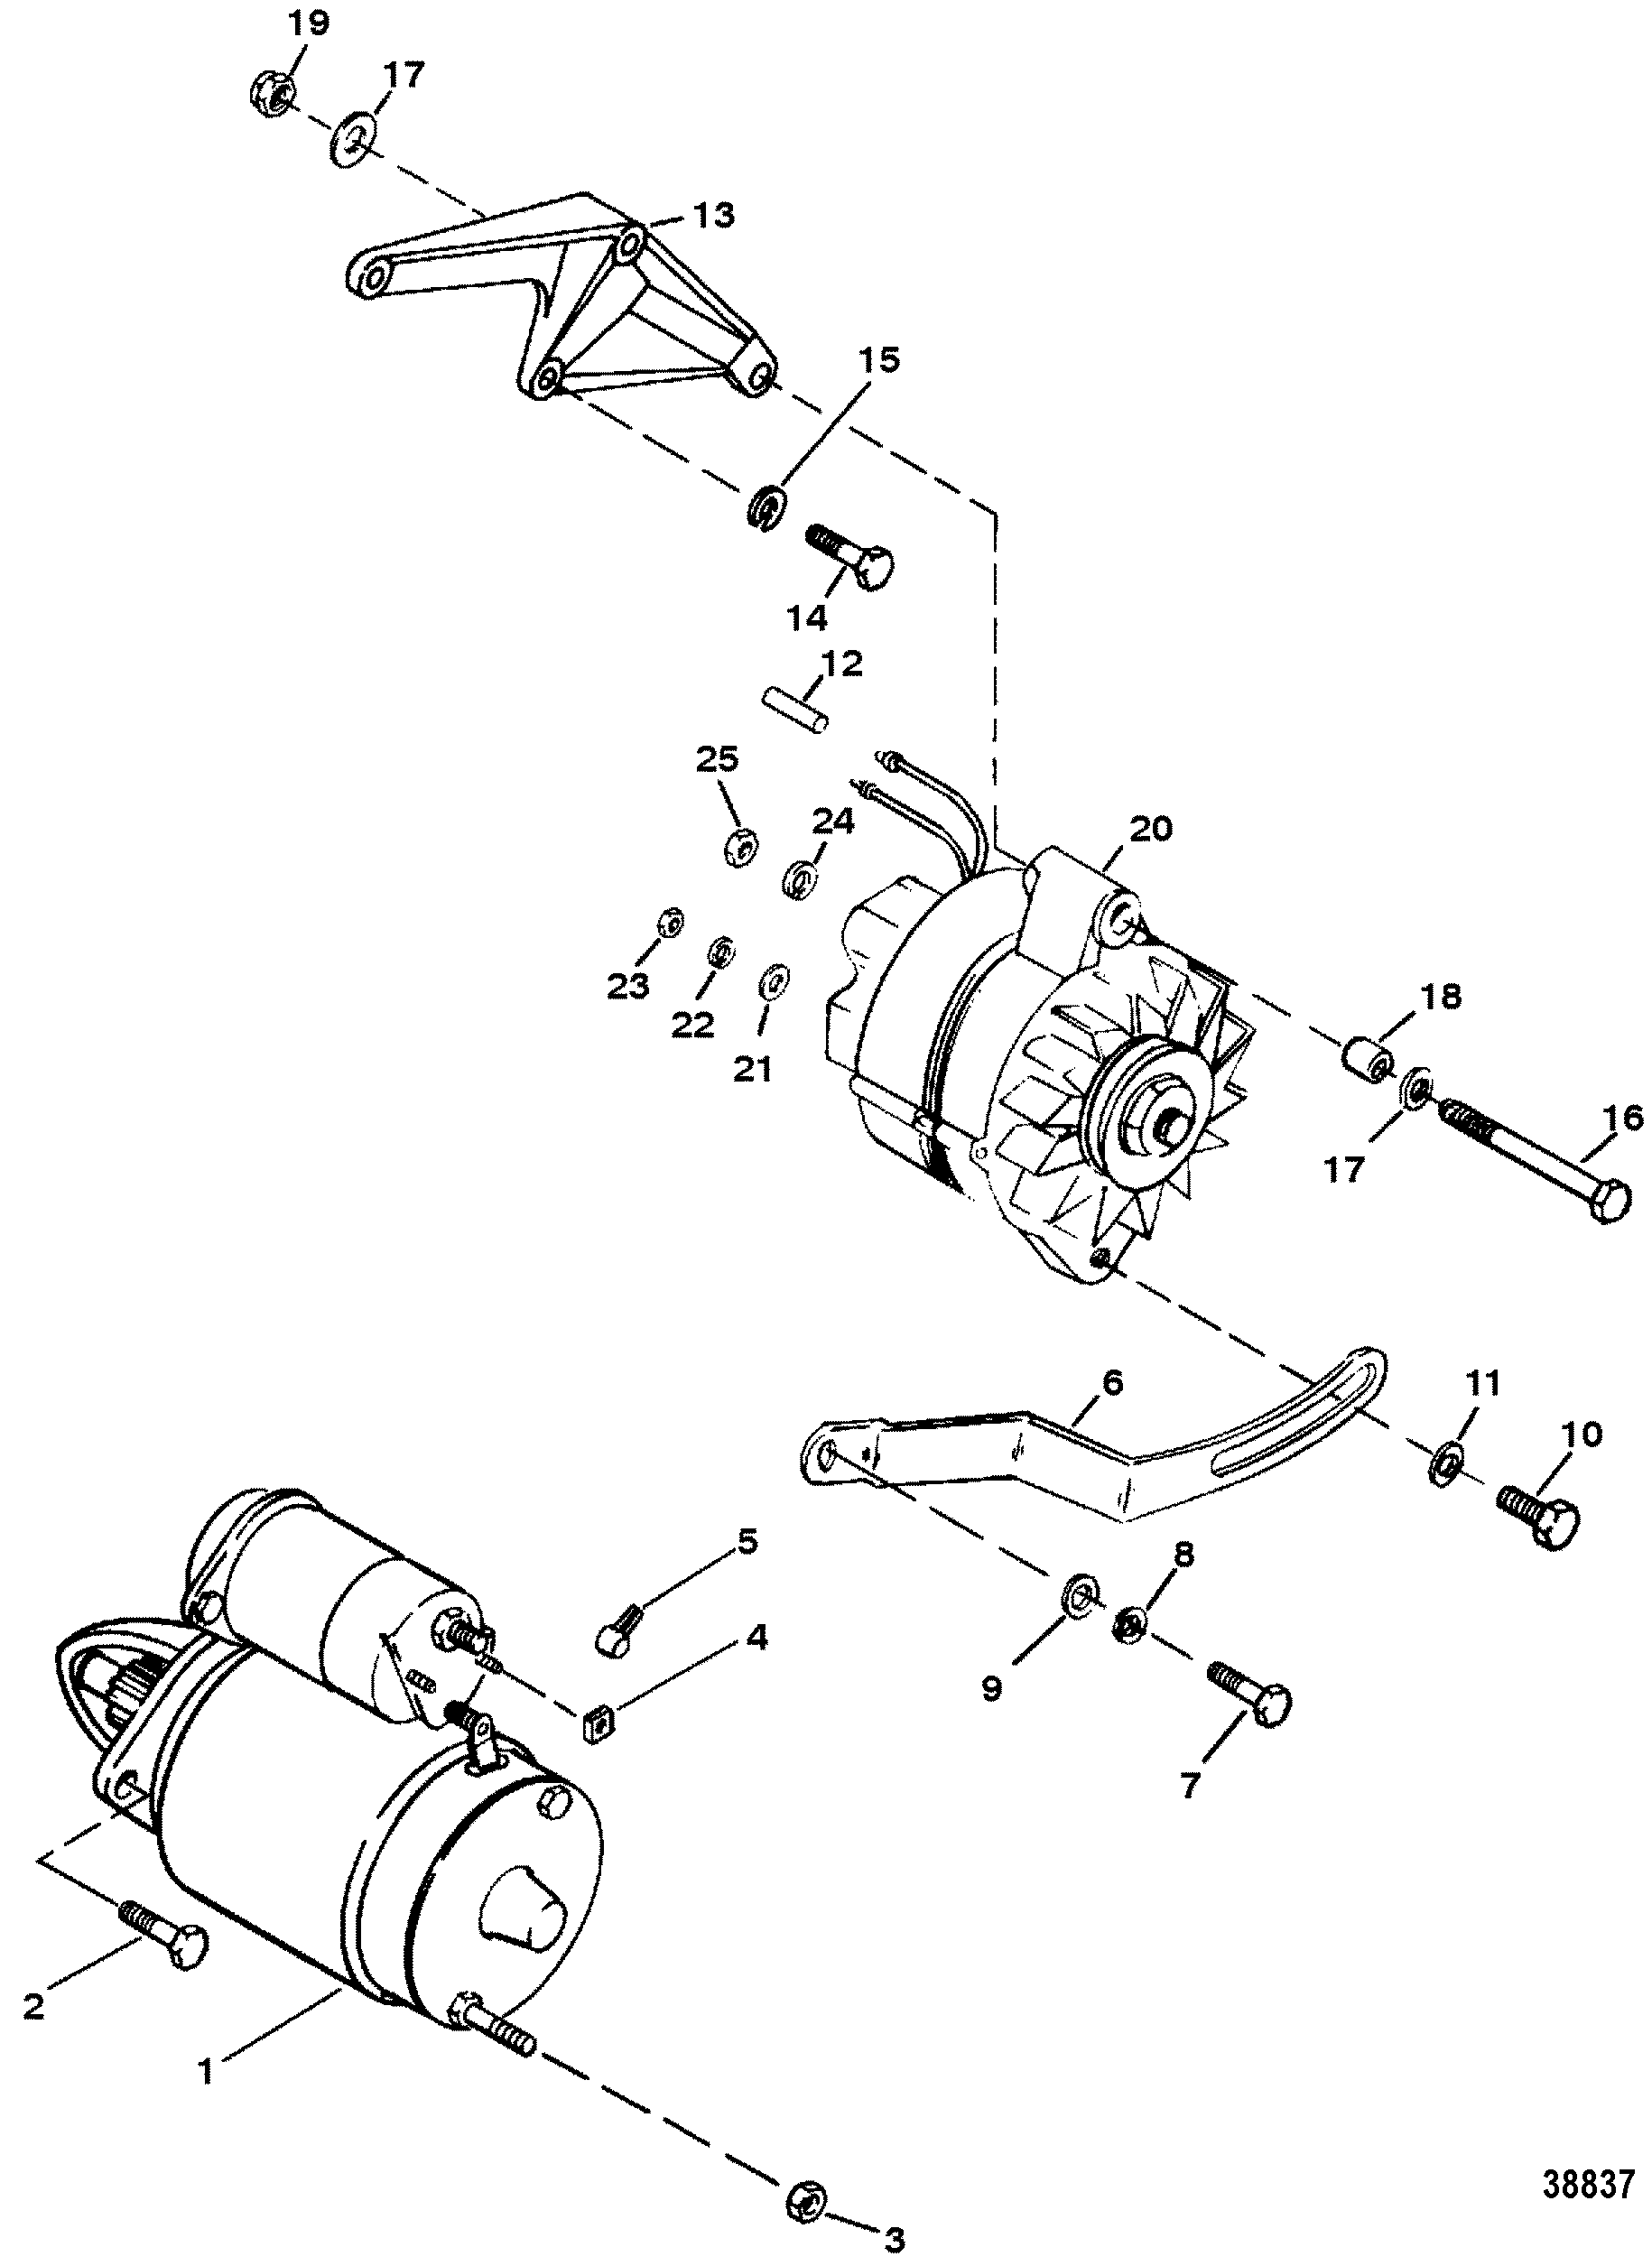 Marine 454 Starter Alternator Wiring Diagram Libraries Mercruiser And For 7 4l Mag Bravo Gen V